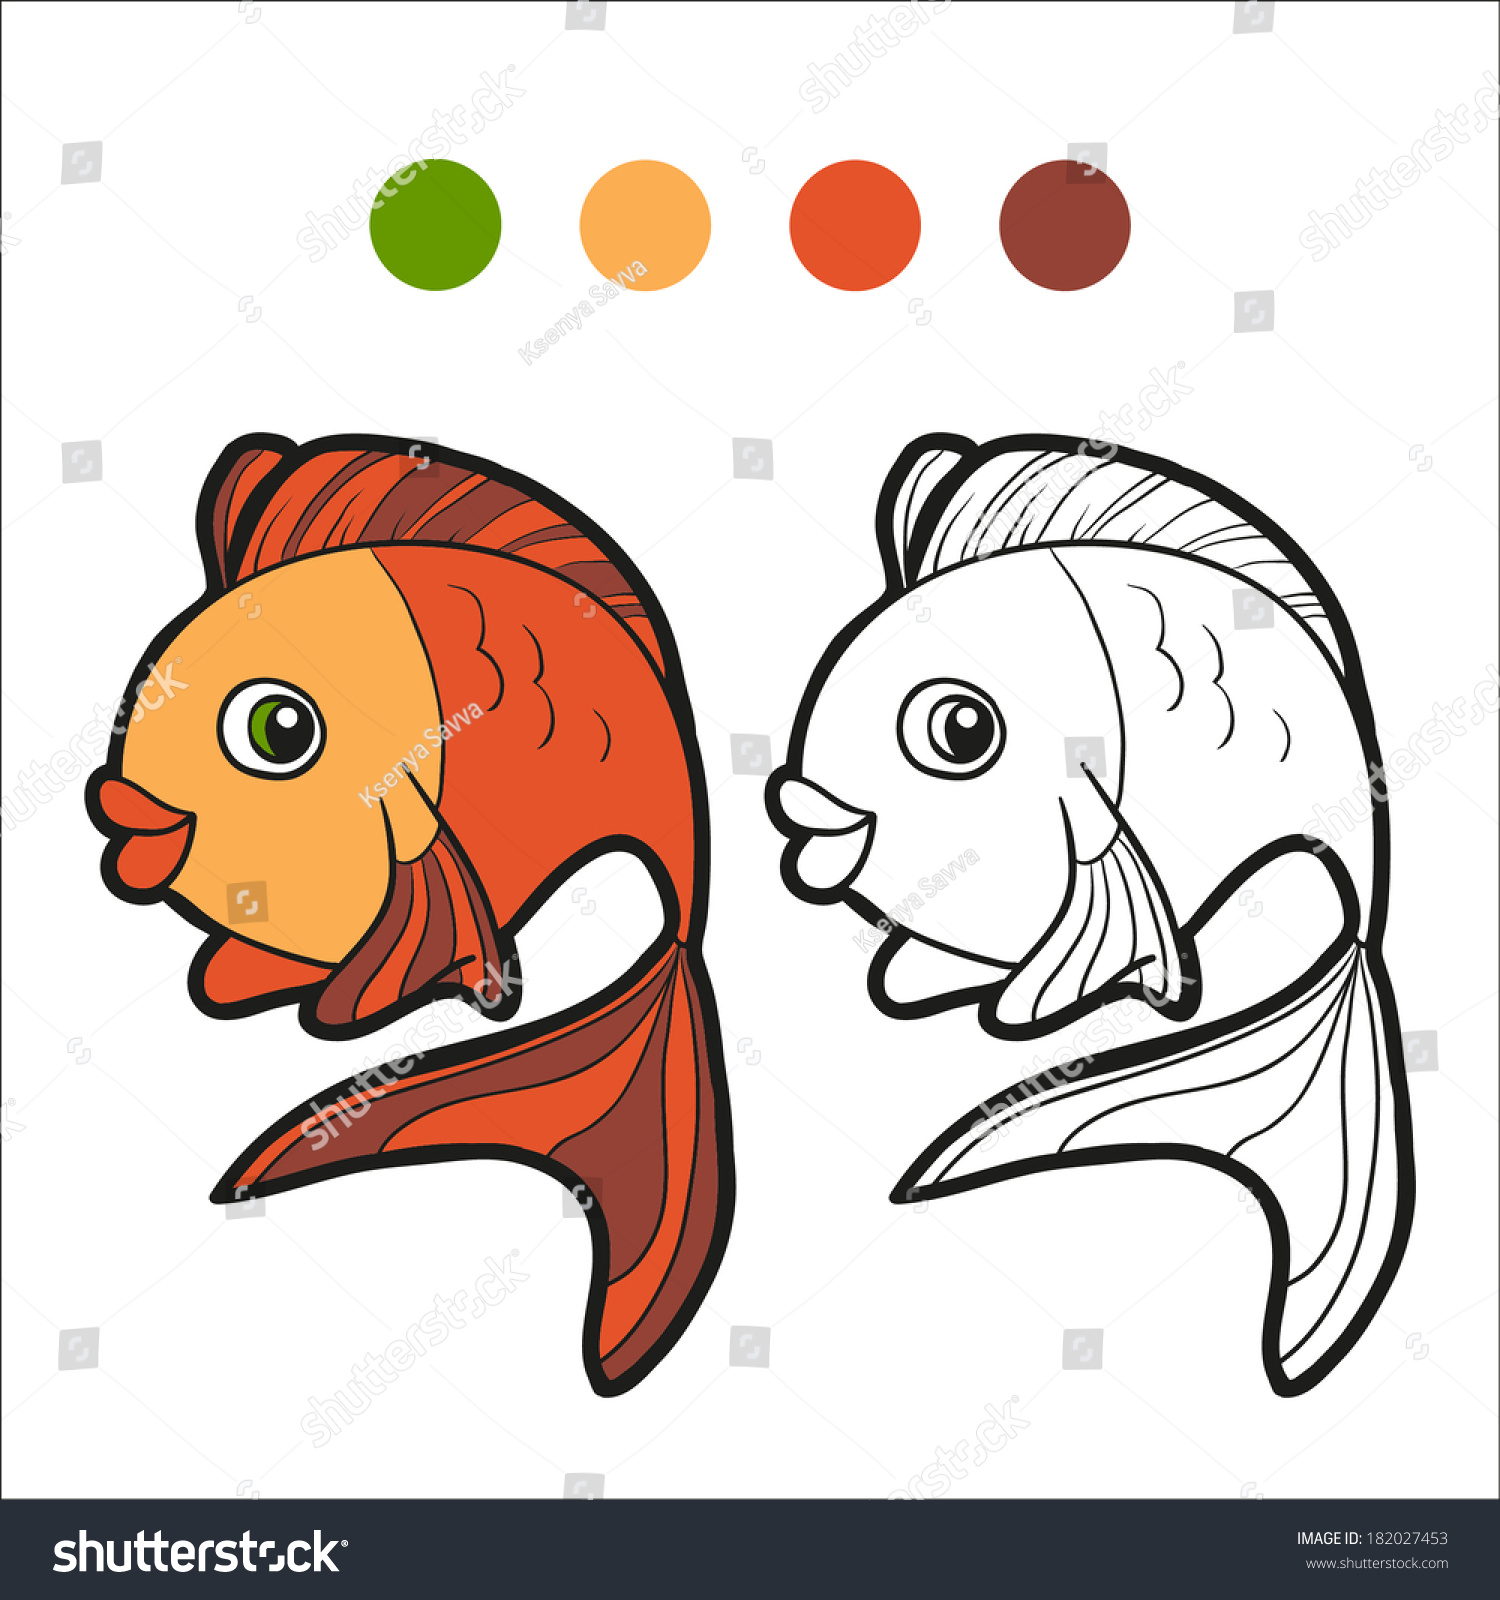 Coloring Book Fish Stock Vector 182027453 - Shutterstock